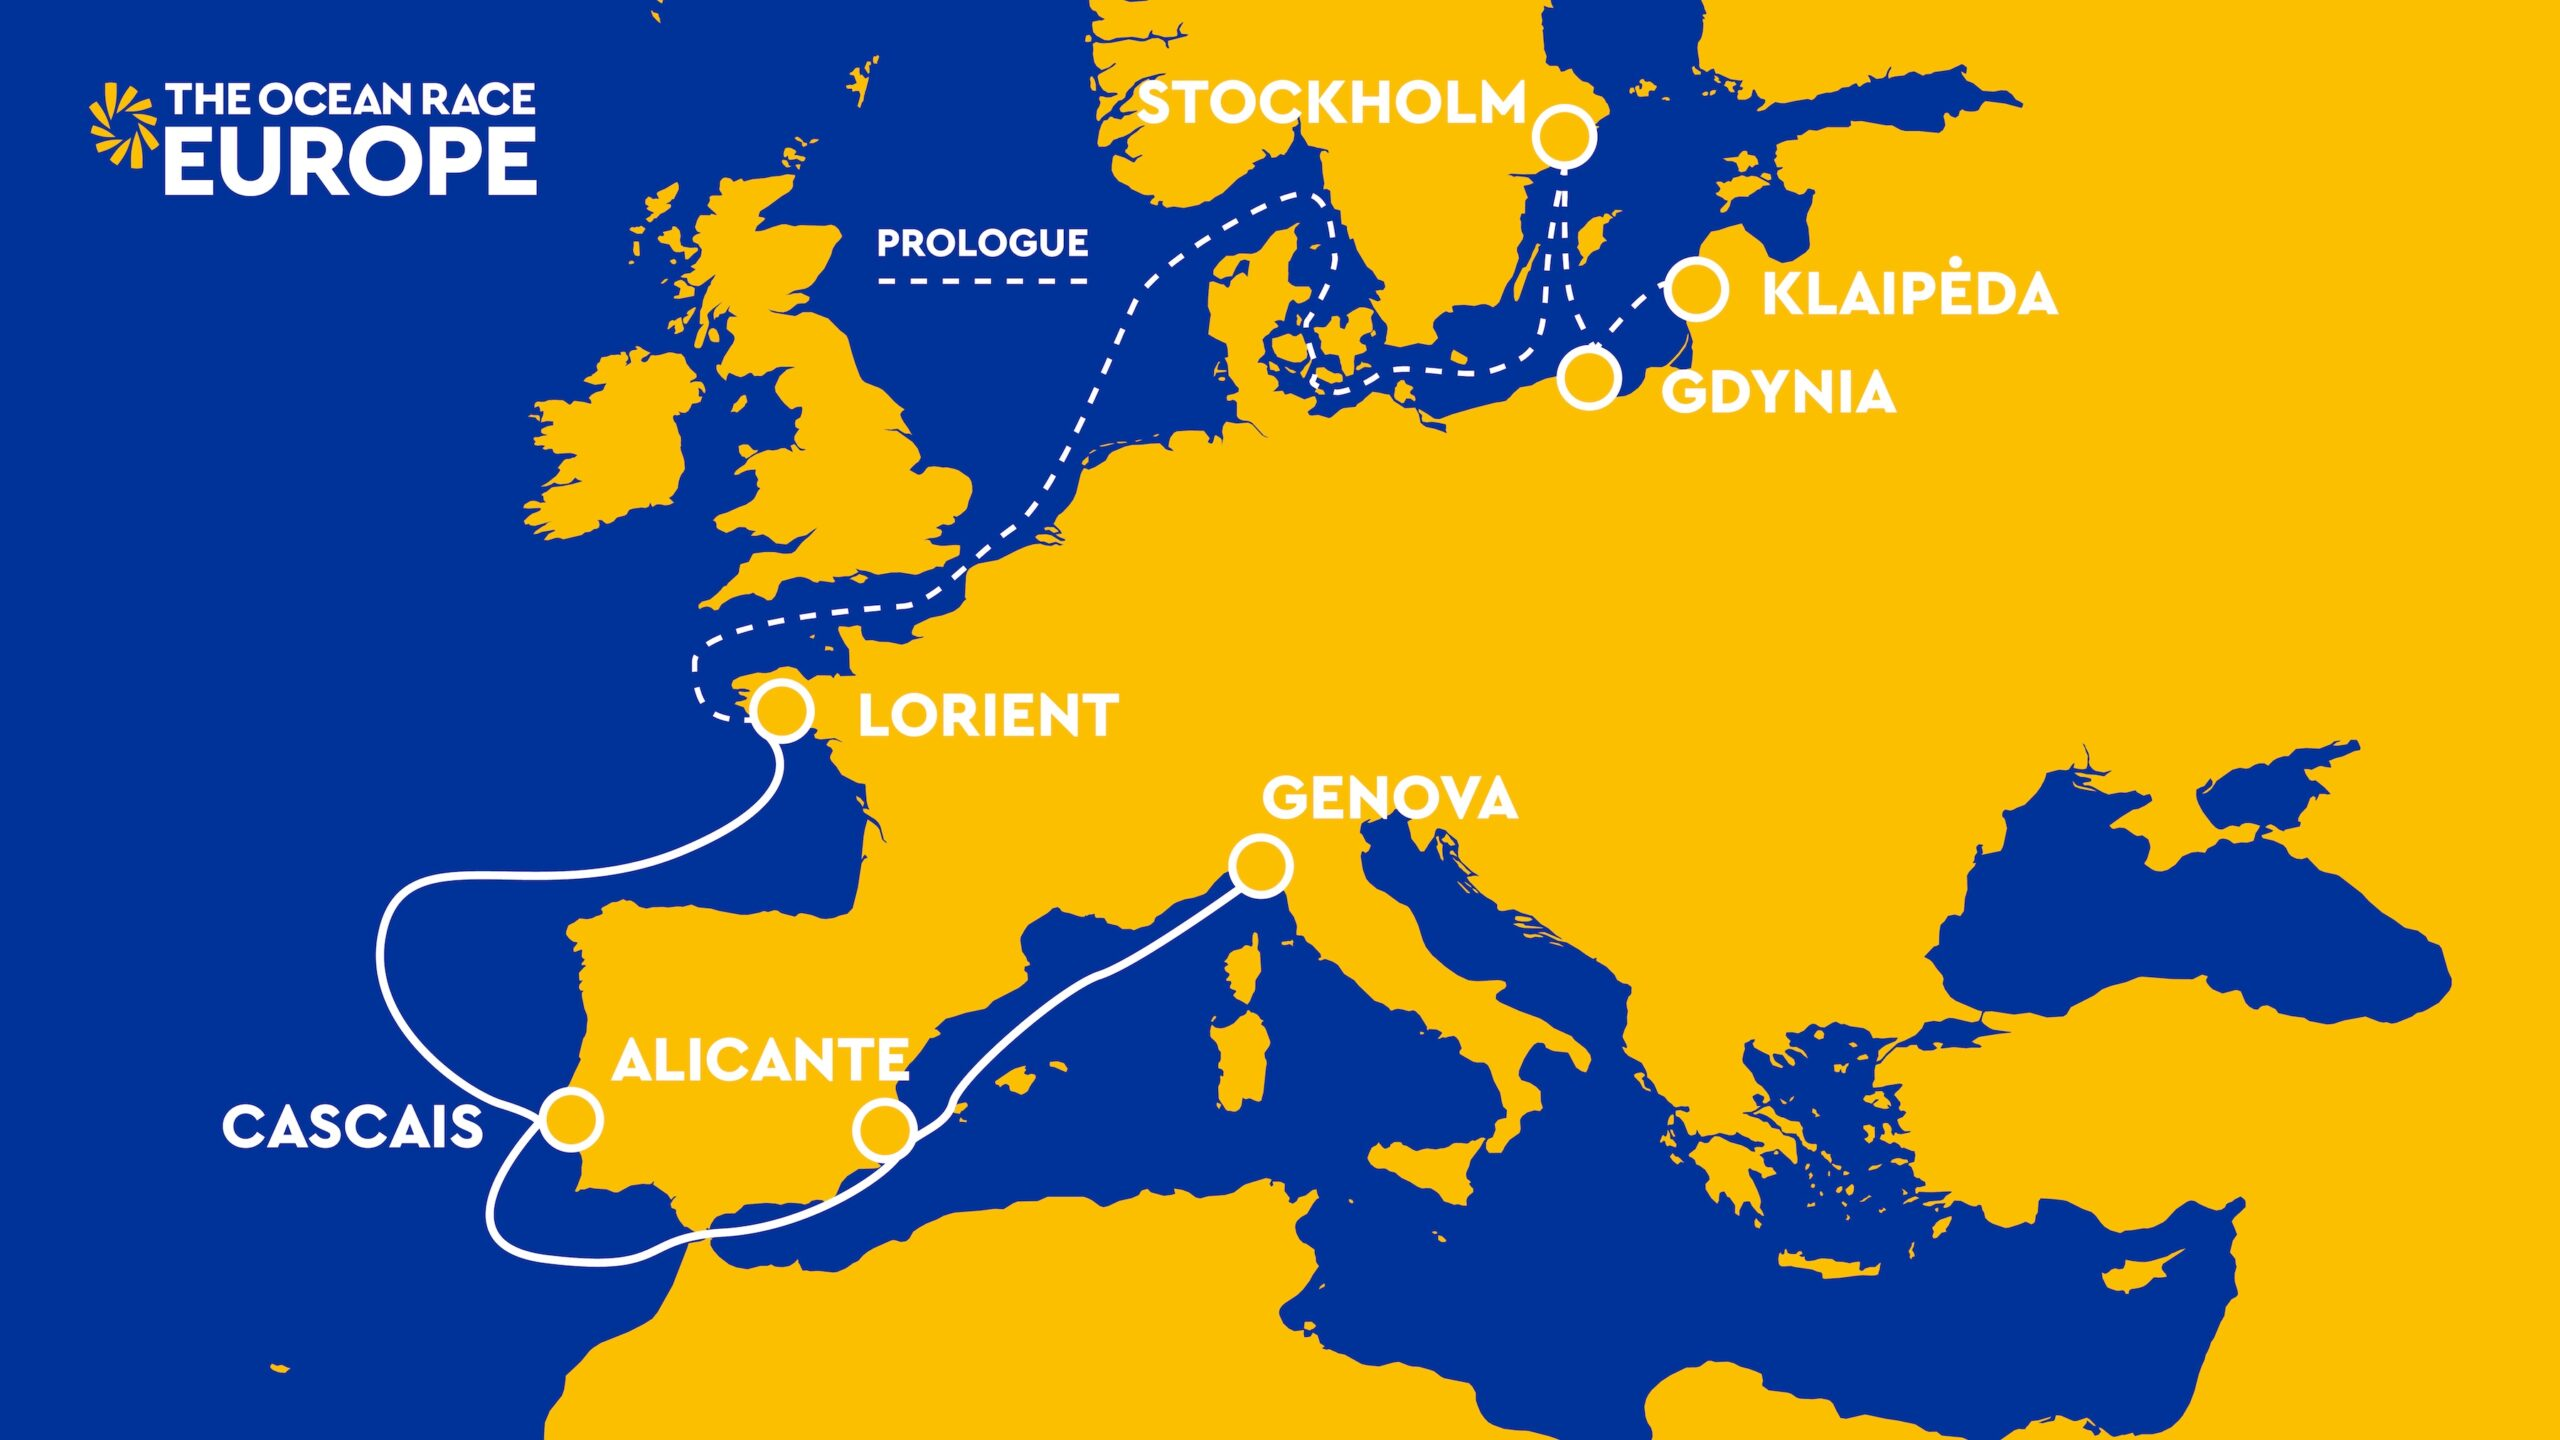 MAPA RECORRIDO THE OCEAN RACE EUROPE 20 ABR 2021